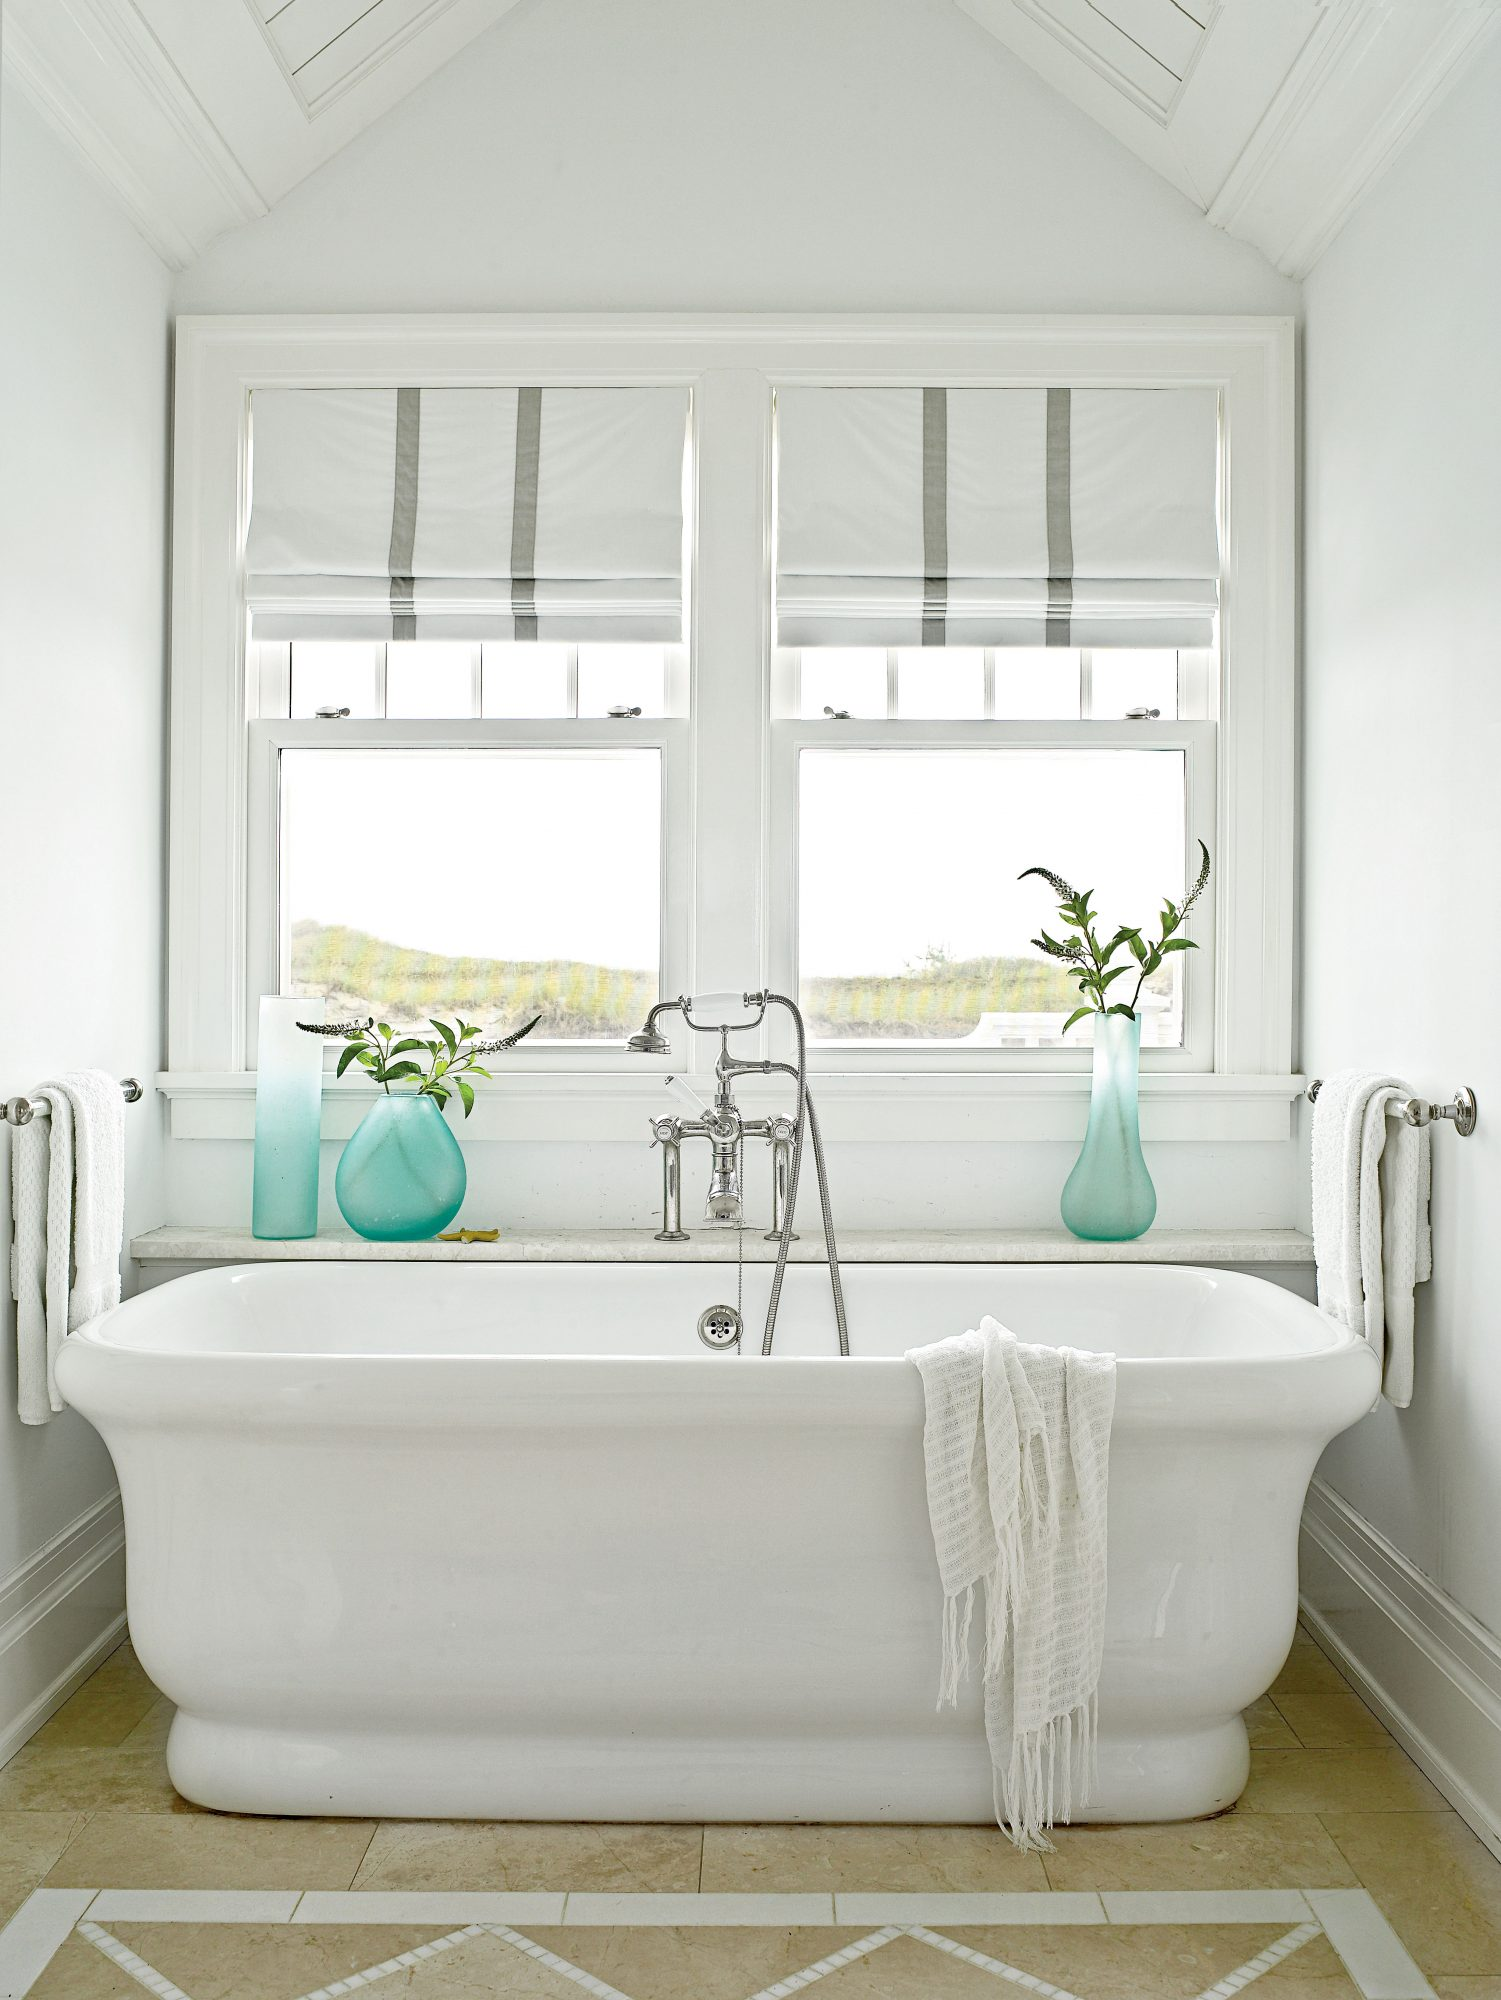 In this master bath, a deep, freestanding tub overlooks the grassy dunes, making it a serene escape.